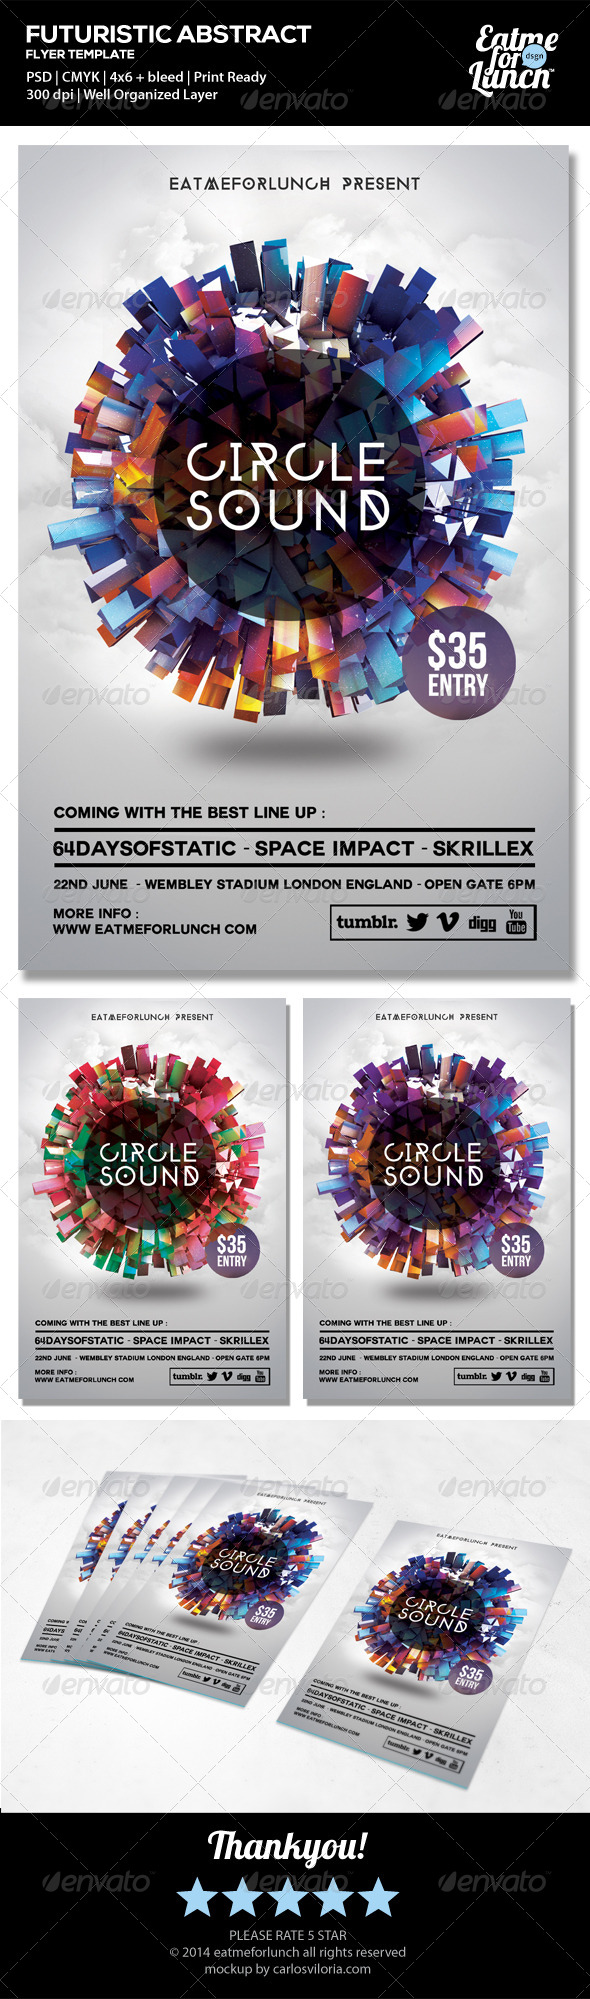 Futuristic Electronic/Dance/Club Flyer Templates - Clubs & Parties Events